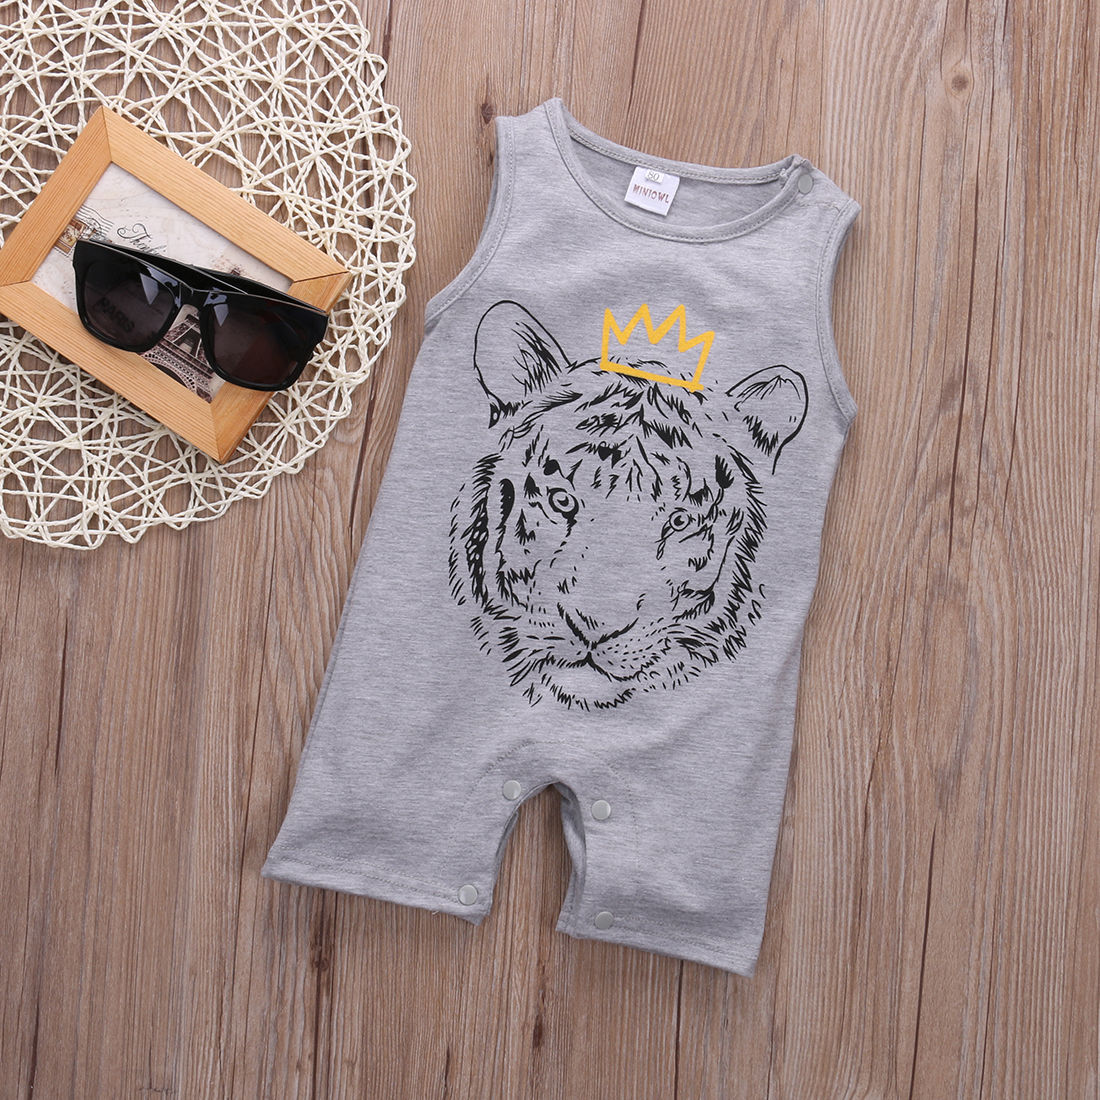 Newborn Toddler Infant Baby Boy Girl Unisex Clothes Tiger Printed Romper Jumpsuit Playsuit Outfits 0-24M spring baby romper infant boy bear romper newborn hooded animal clothes toddler cute panda romper kid girl jumpsuit baby costume